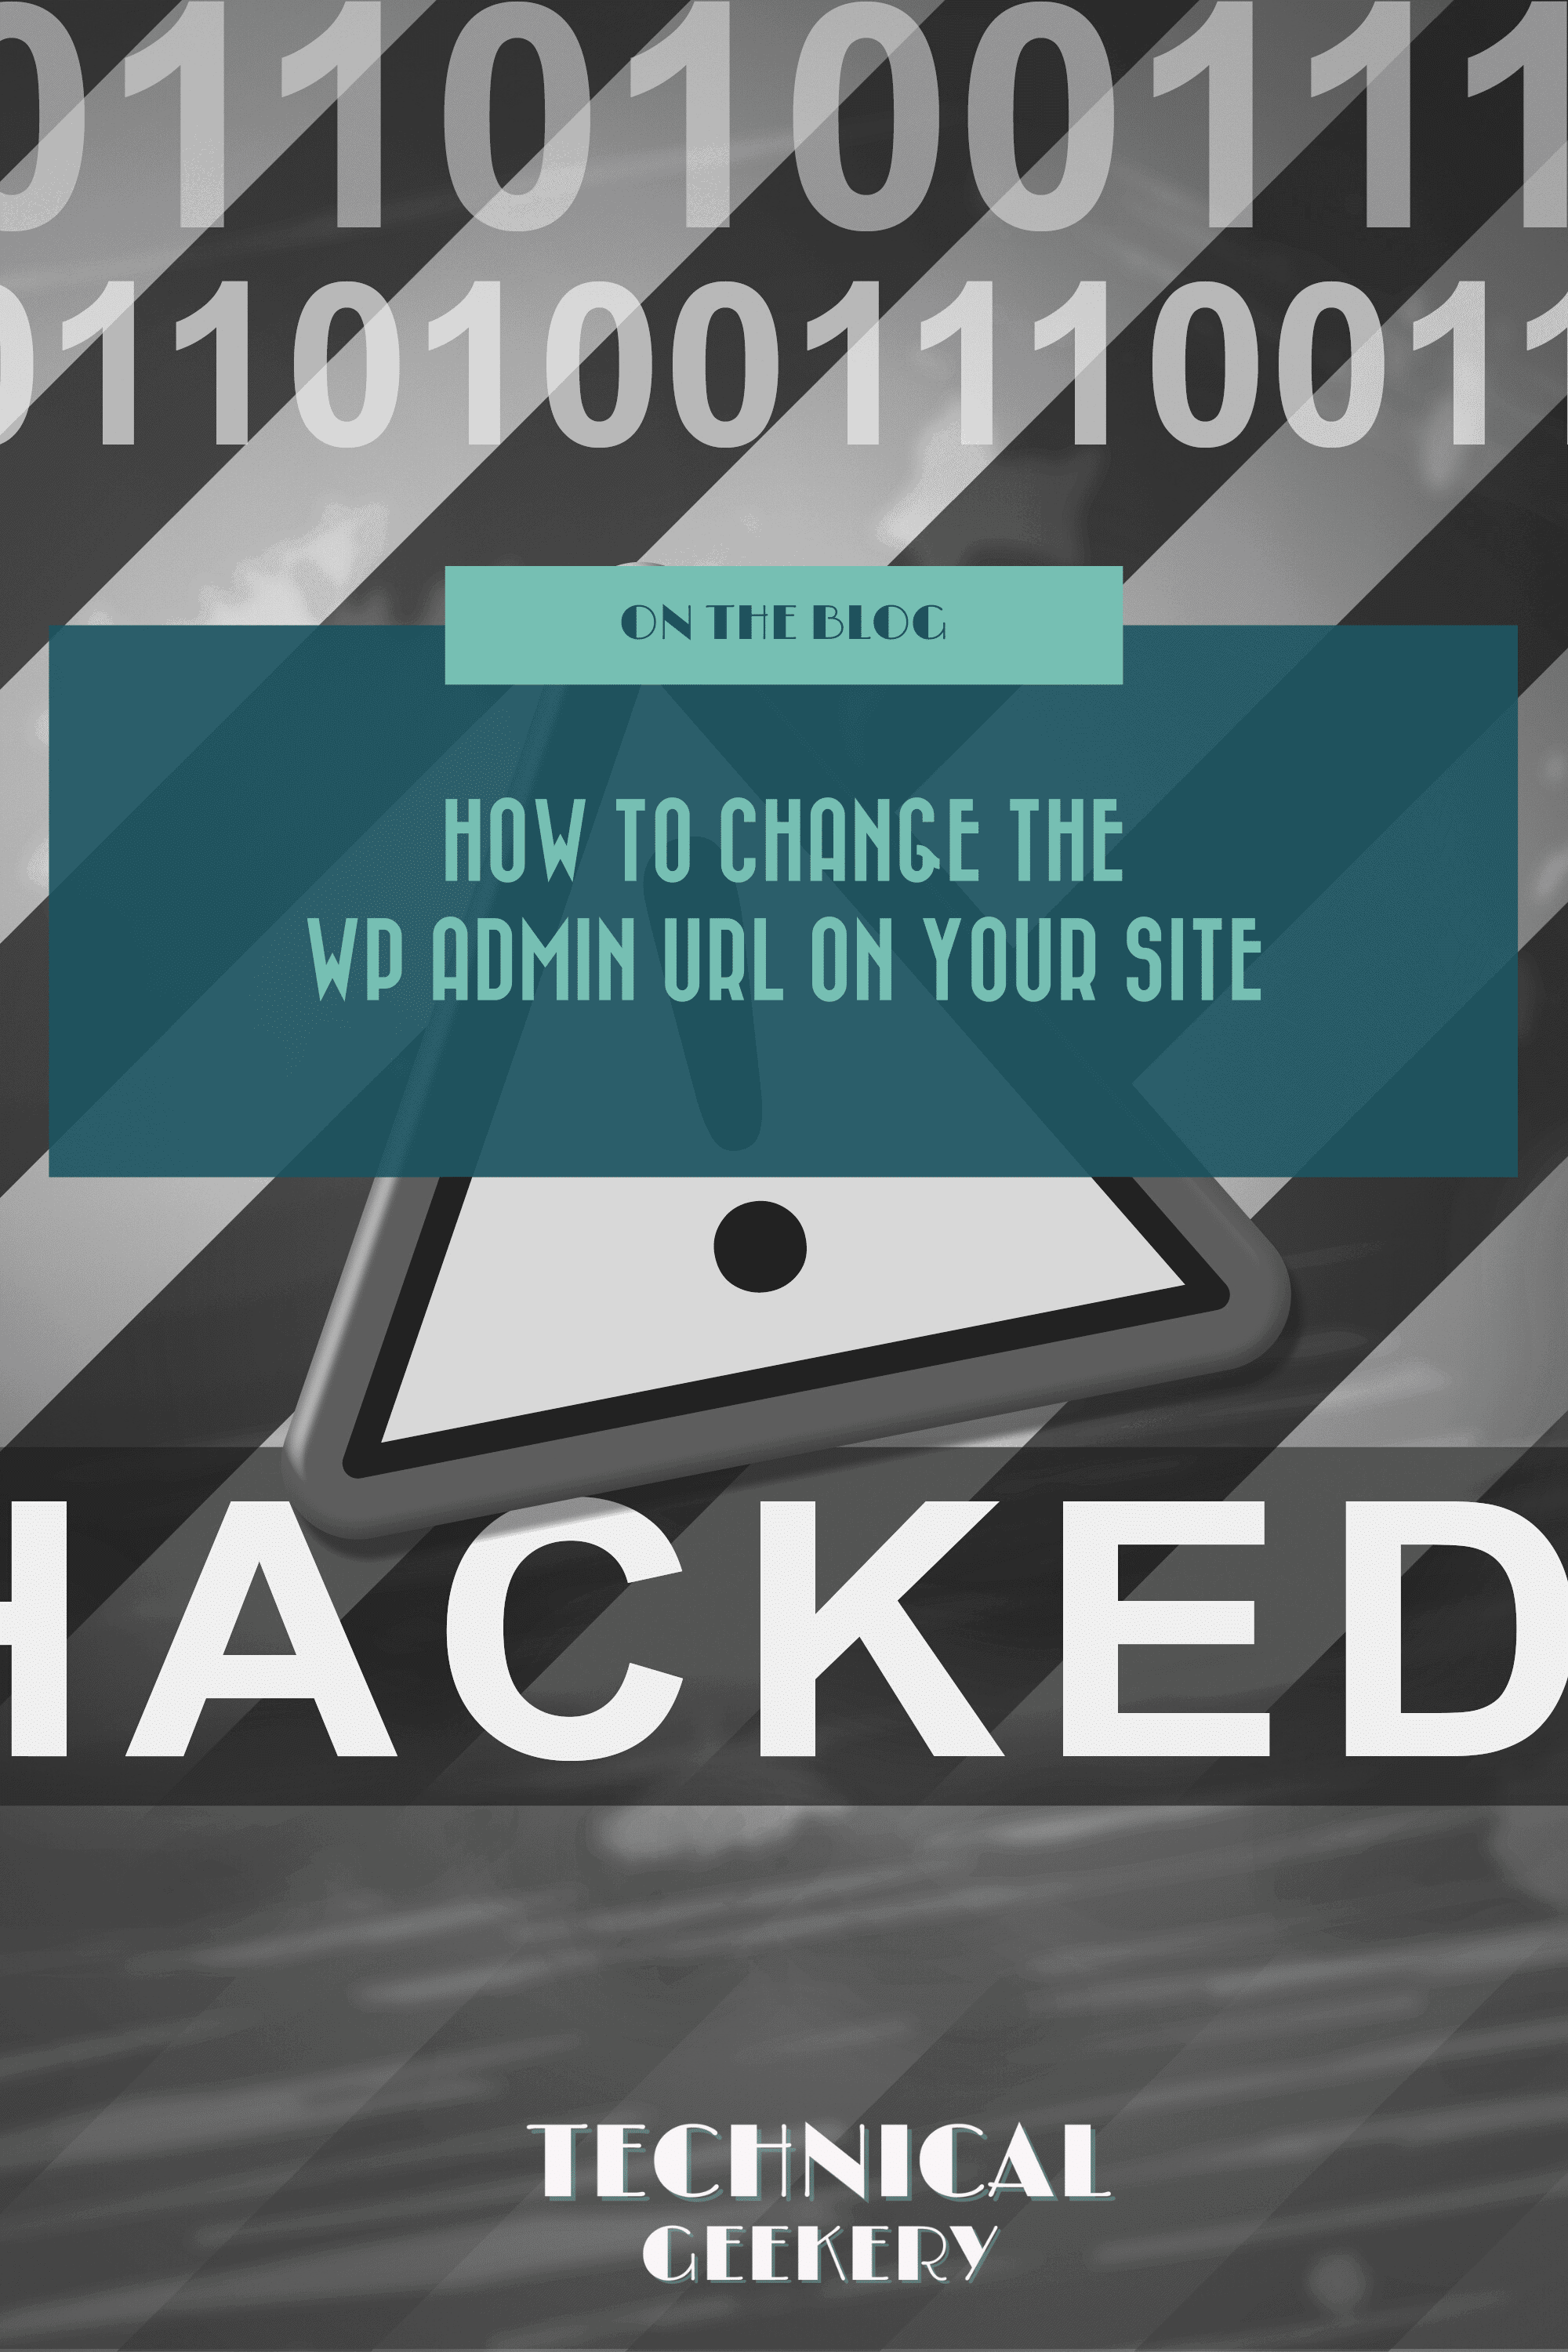 How to Change the WP Admin URL Link for Your Site